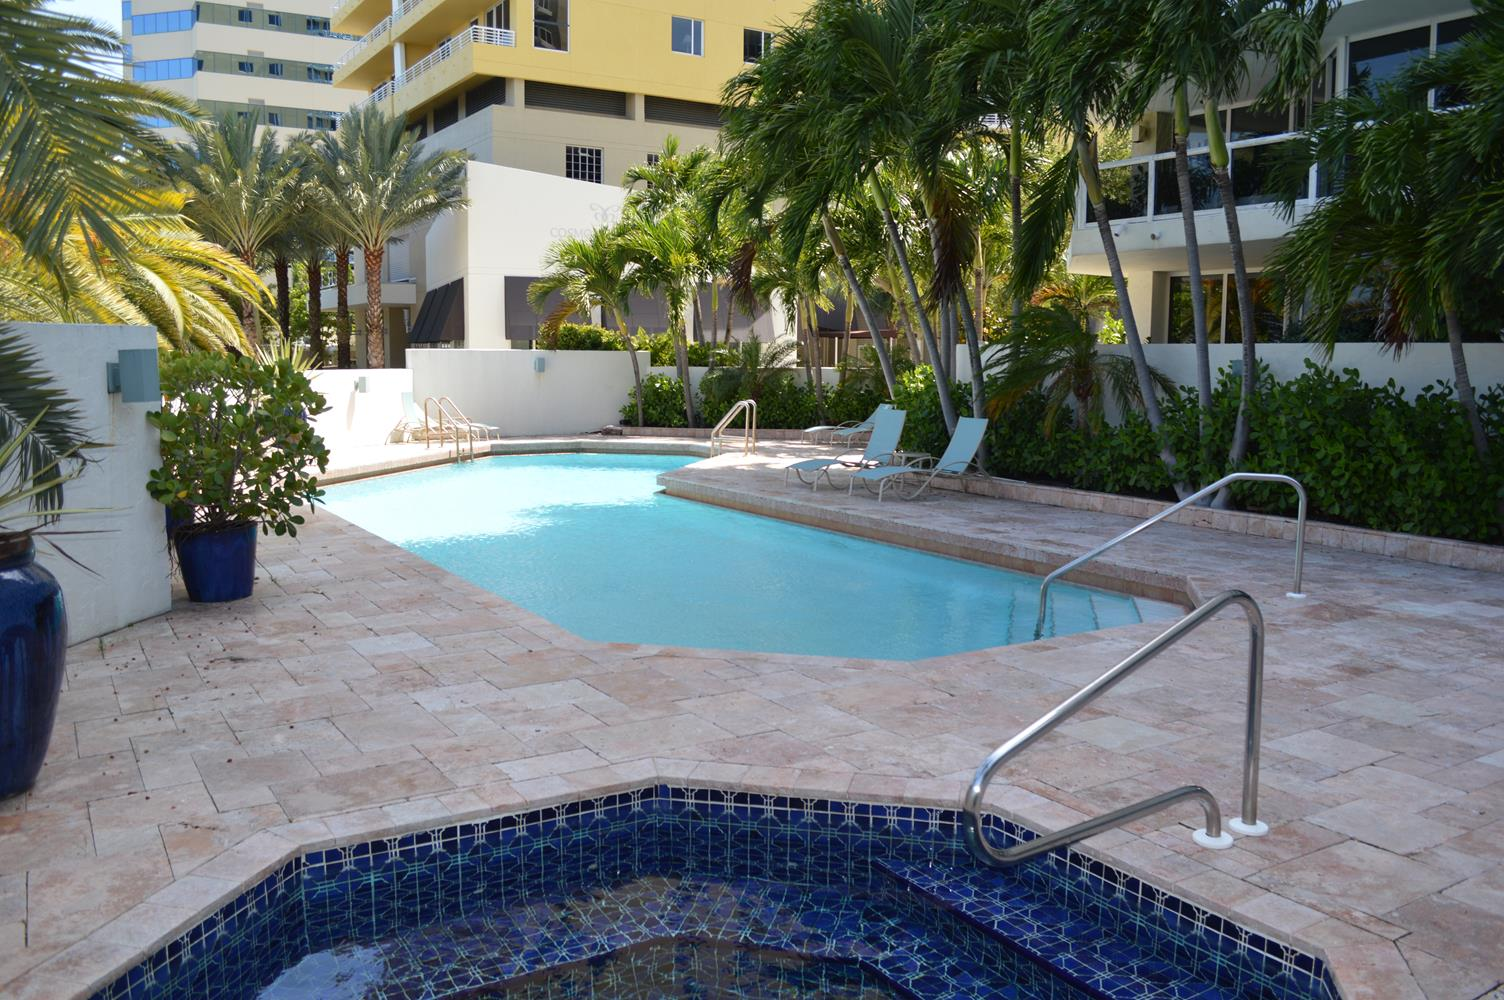 Villa Lofts West Palm Beach Condos For Sale Livewpb